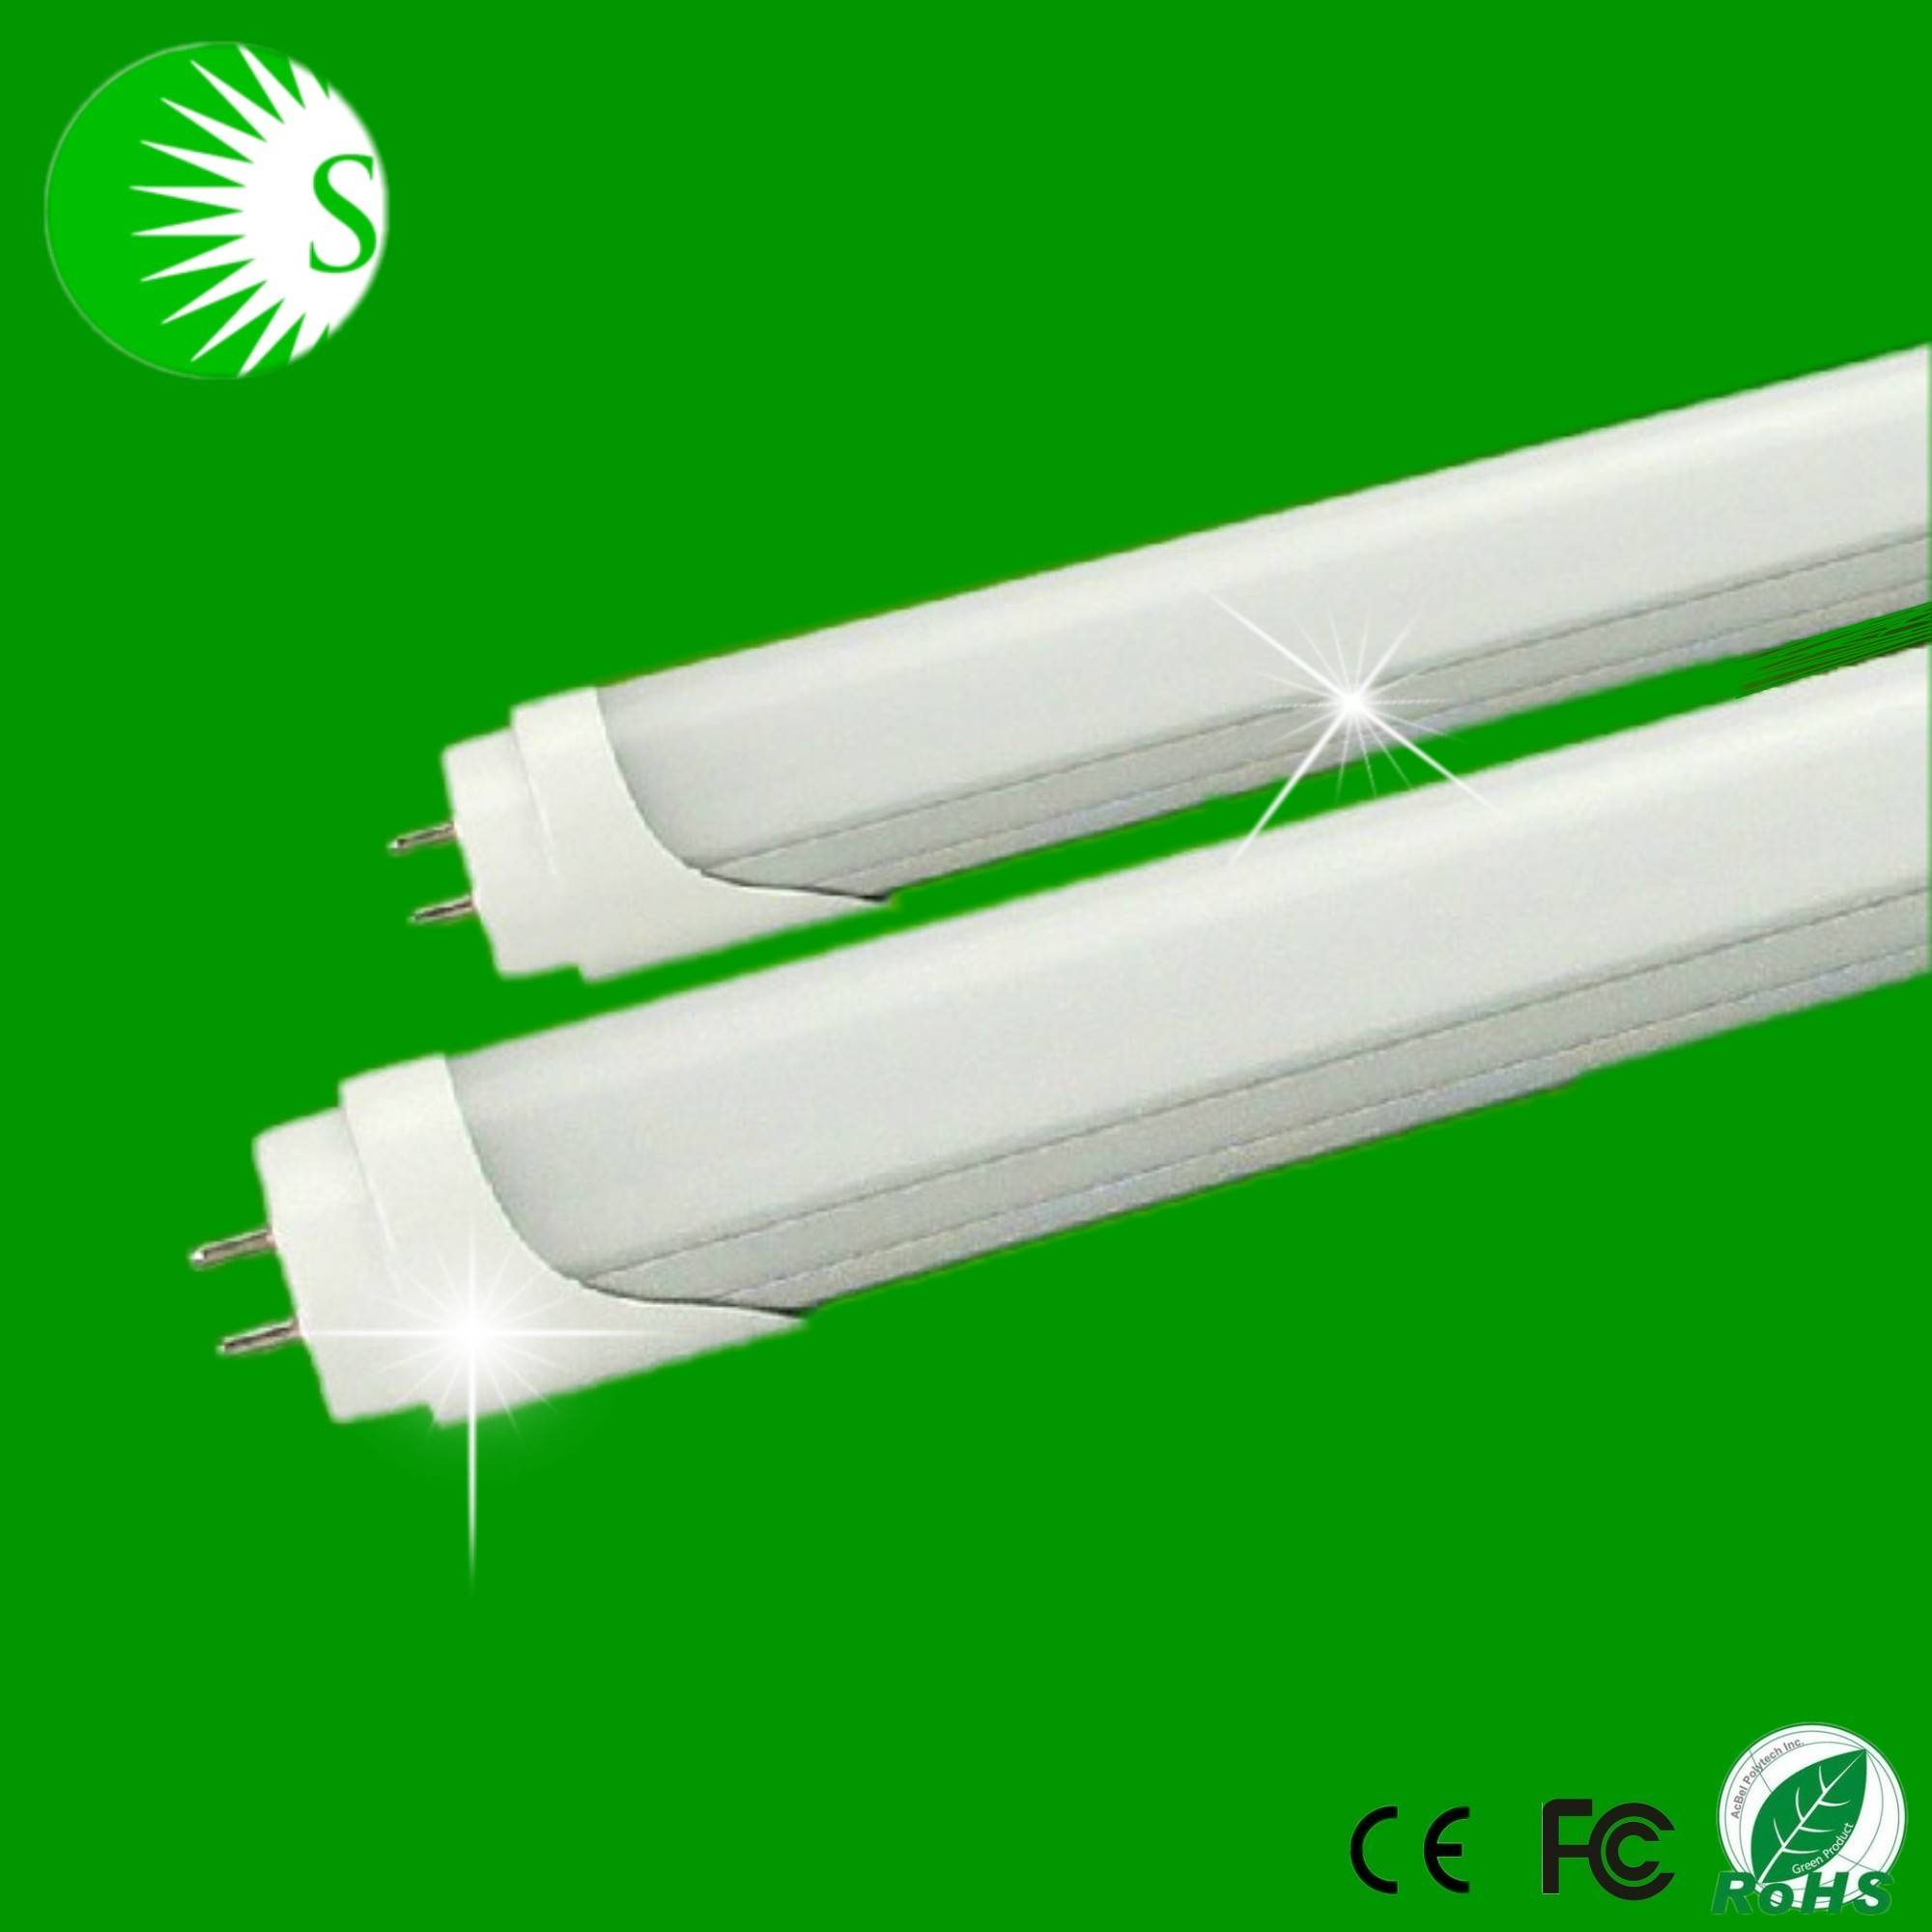 4w 6w 9w 12w 18w 0.6m 0.9m 1.2m Epistar 2835 led chip light wide voltage 85-265v tube led